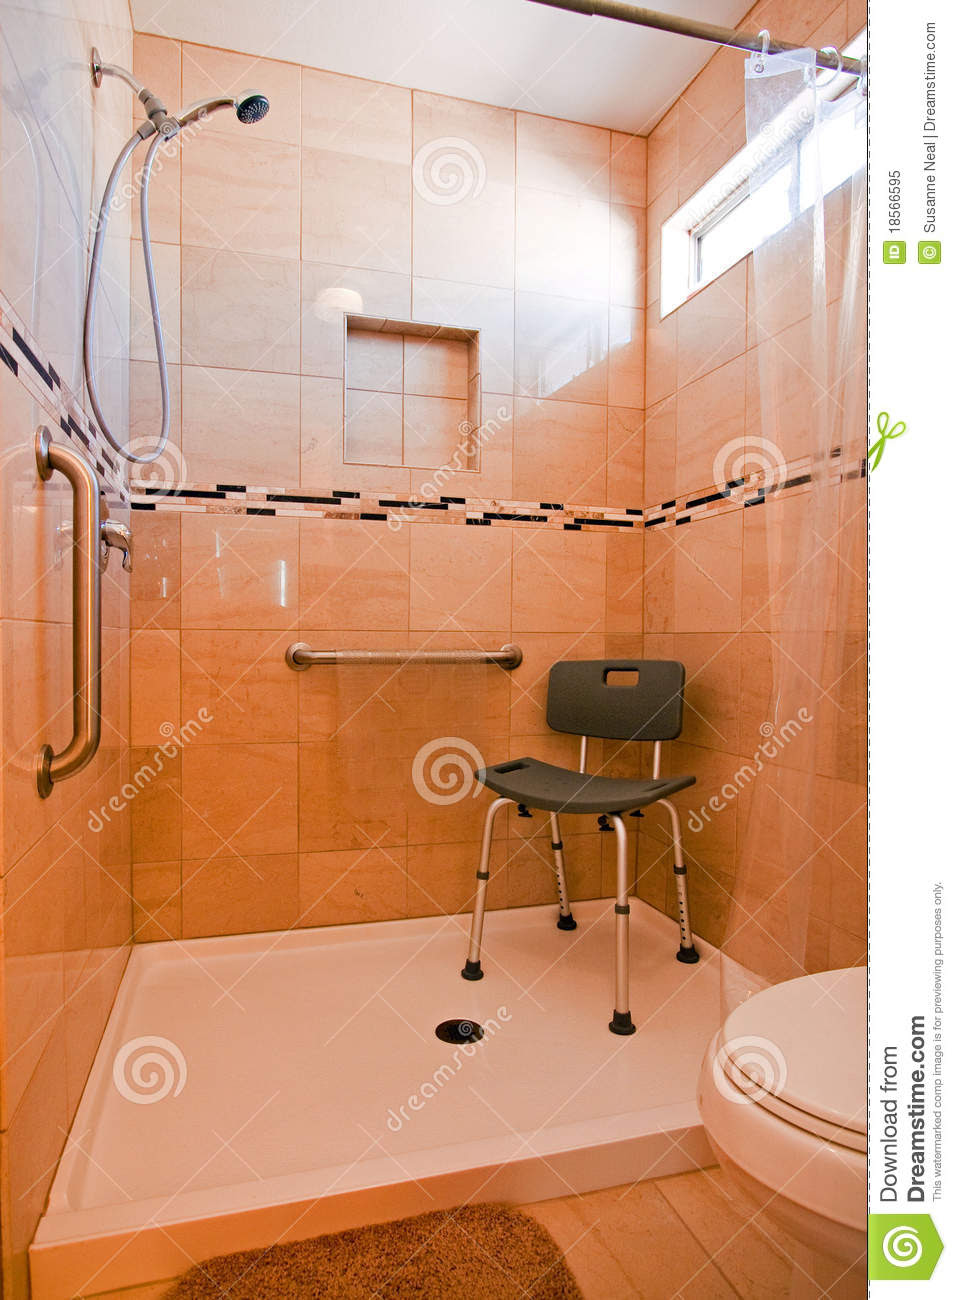 Handiced Shower Stall Royalty Free Stock Photo Image 18566595